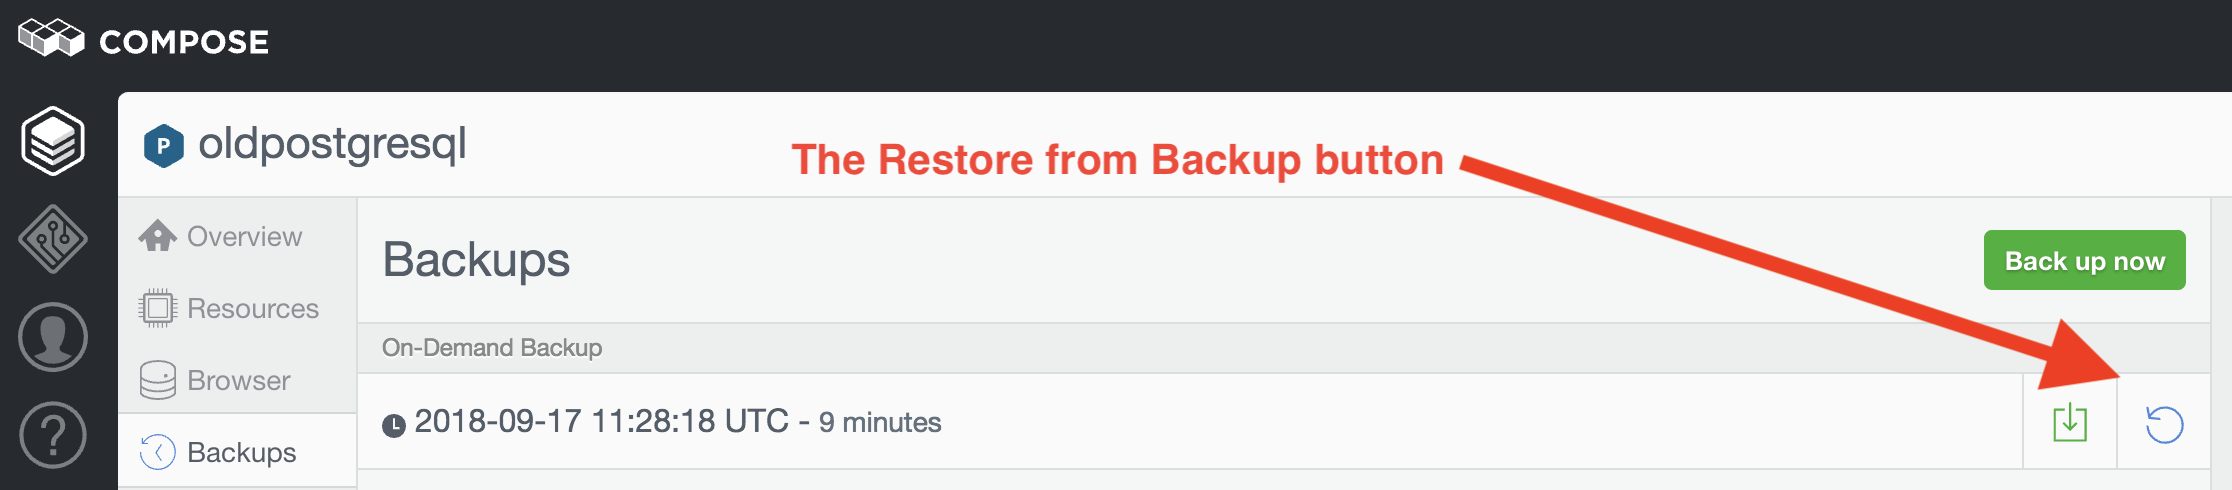 Restore from Backups